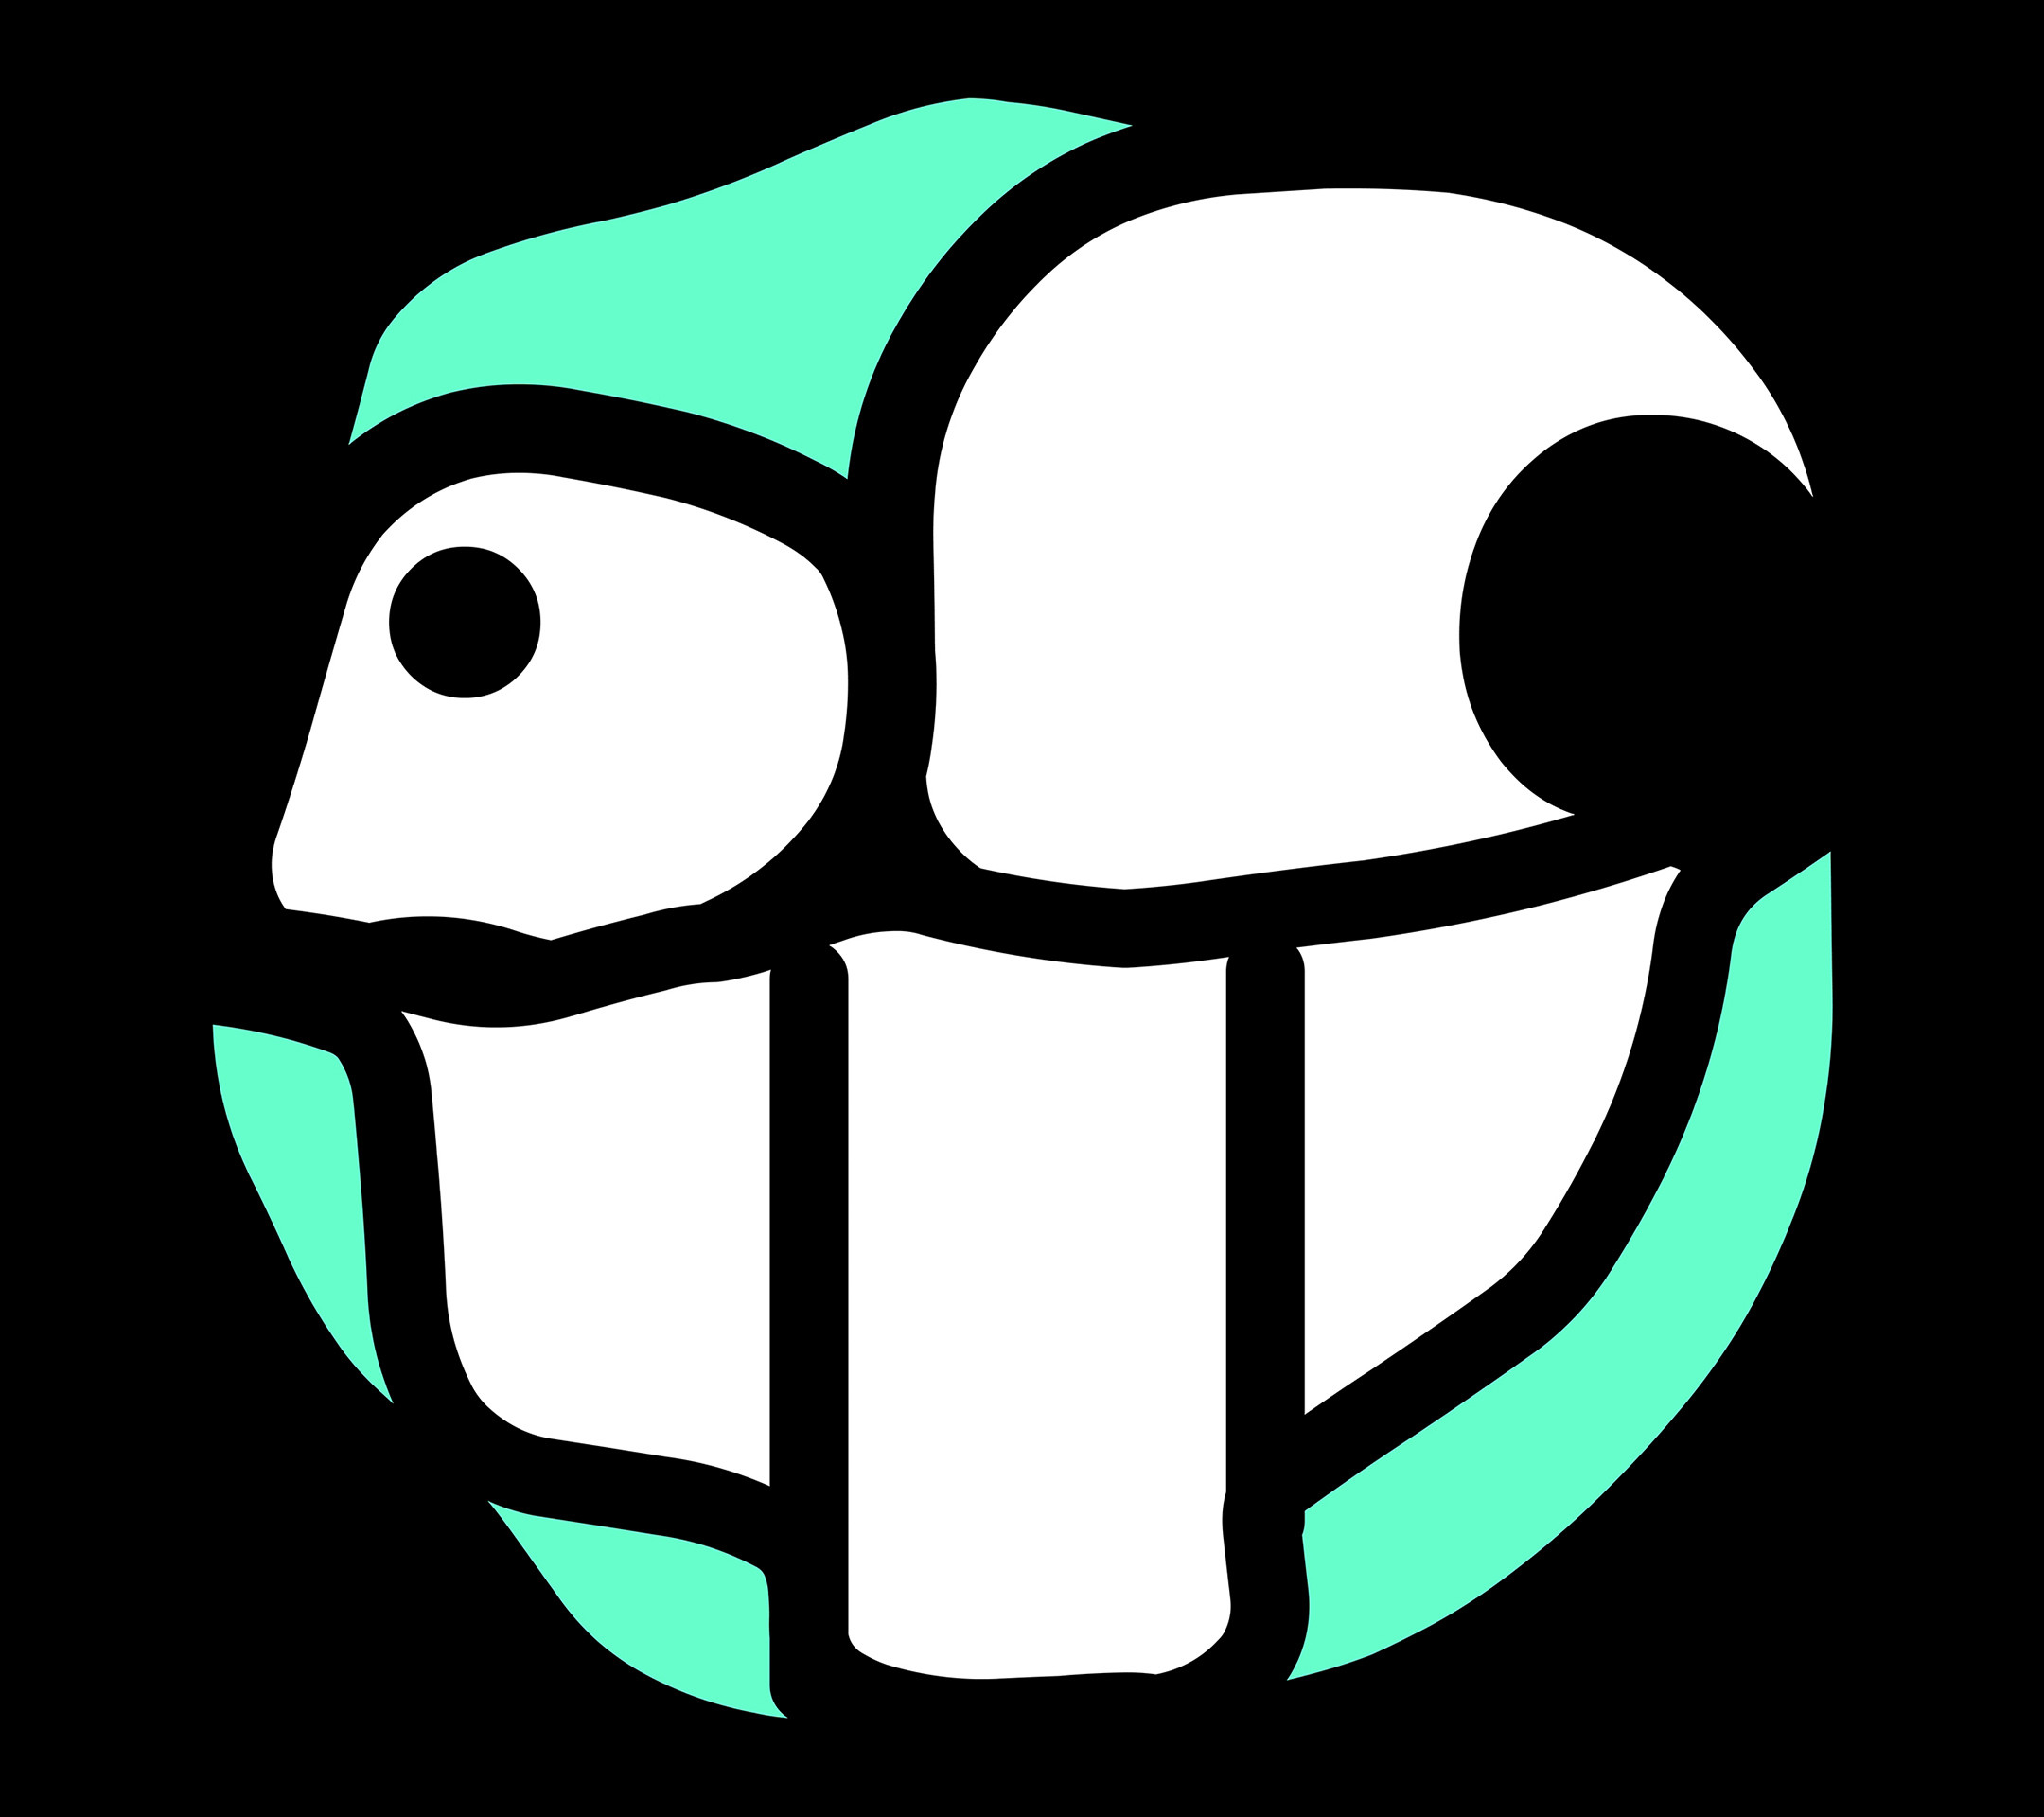 2160x1920 Funny face of the Roto2 Wallpaper